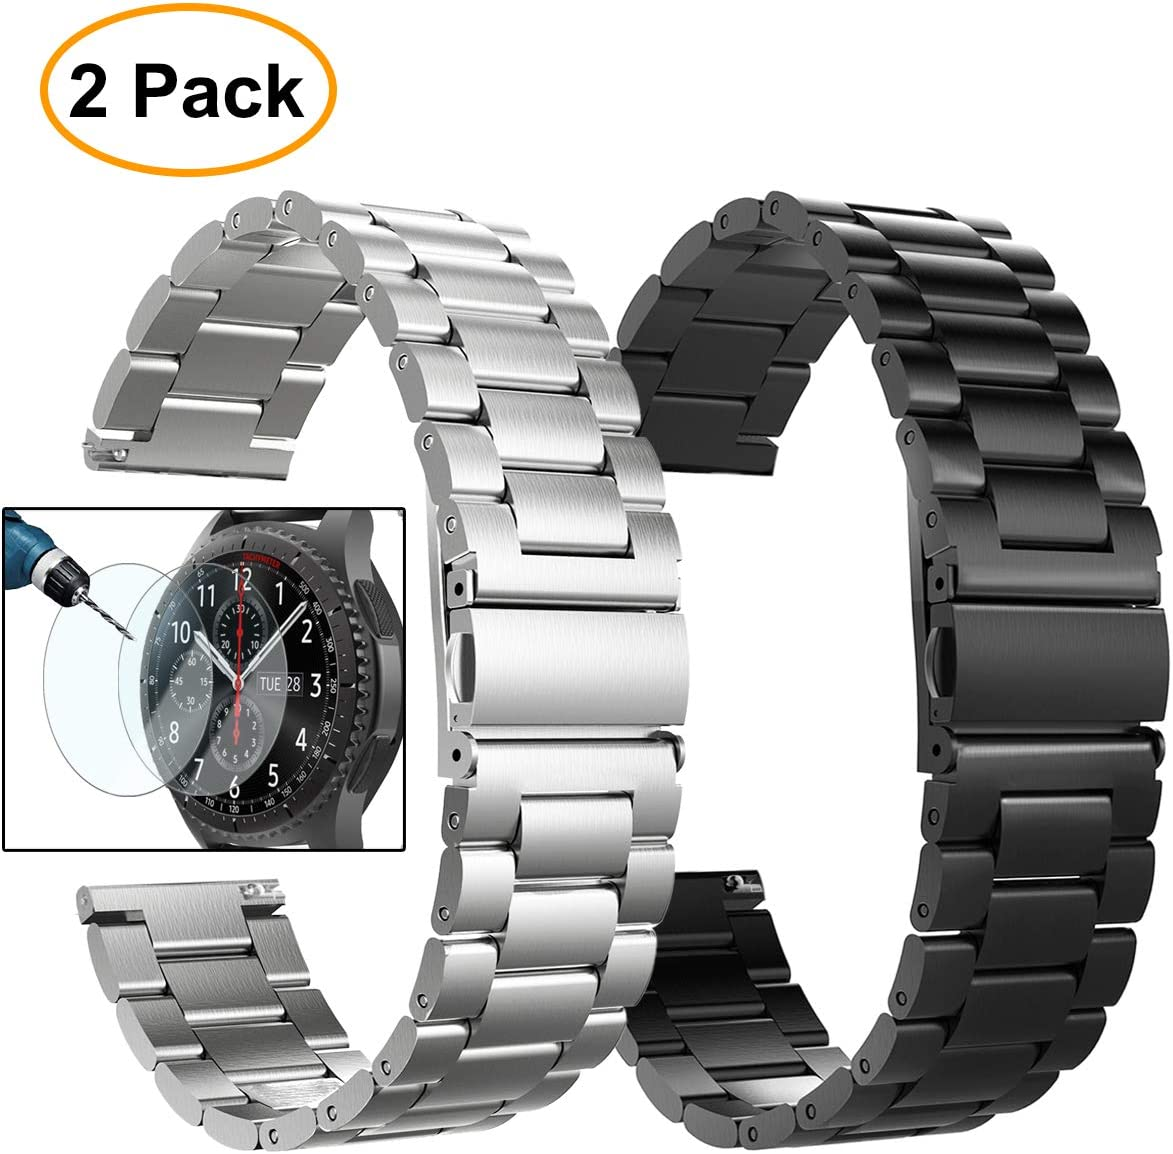 Gear S3 Frontier/Classic Watch Bands, Valkit 22mm Stainless Steel Band, Metal Loop Mesh Replacement Metal Strap +Screen Protector for Samsung Gear S3 Frontier/Classic Smart Watch/Galaxy Watch 46mm